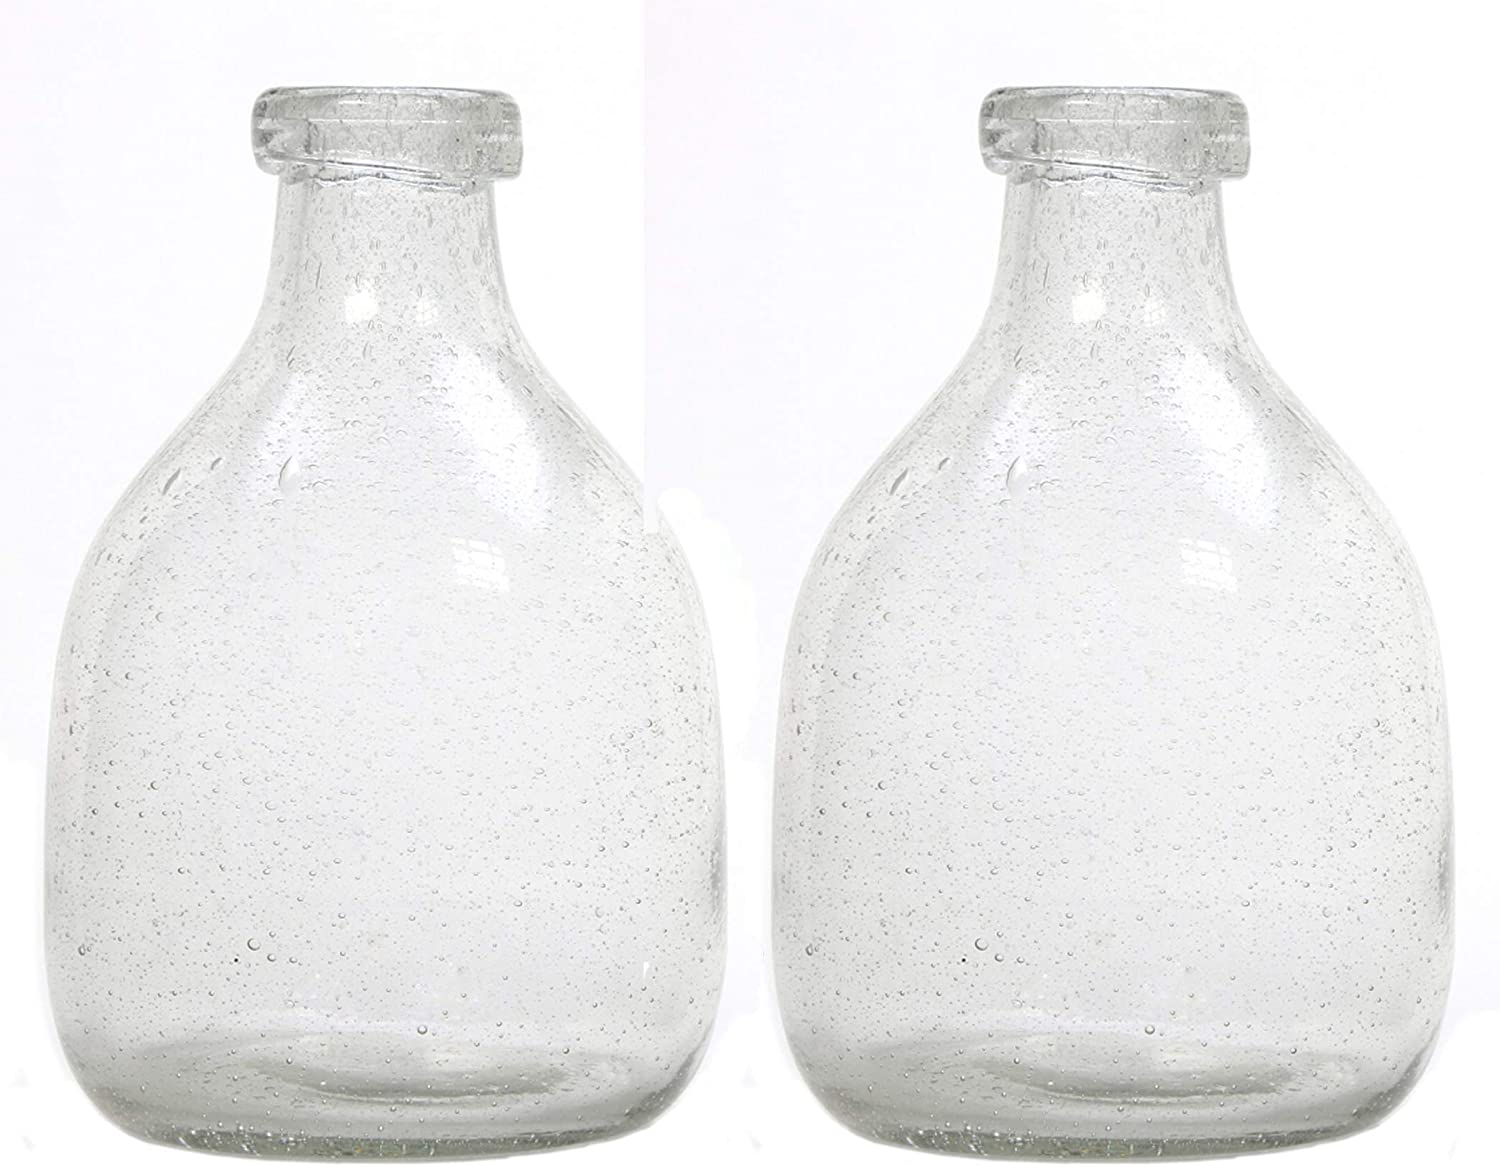 Hosley Set of 2 Clear Glass Bottle Vases 7'' High. Ideal Floral Vase Gift for Wedding Special Occasion Home Office Dried Floral Arrangements O5…